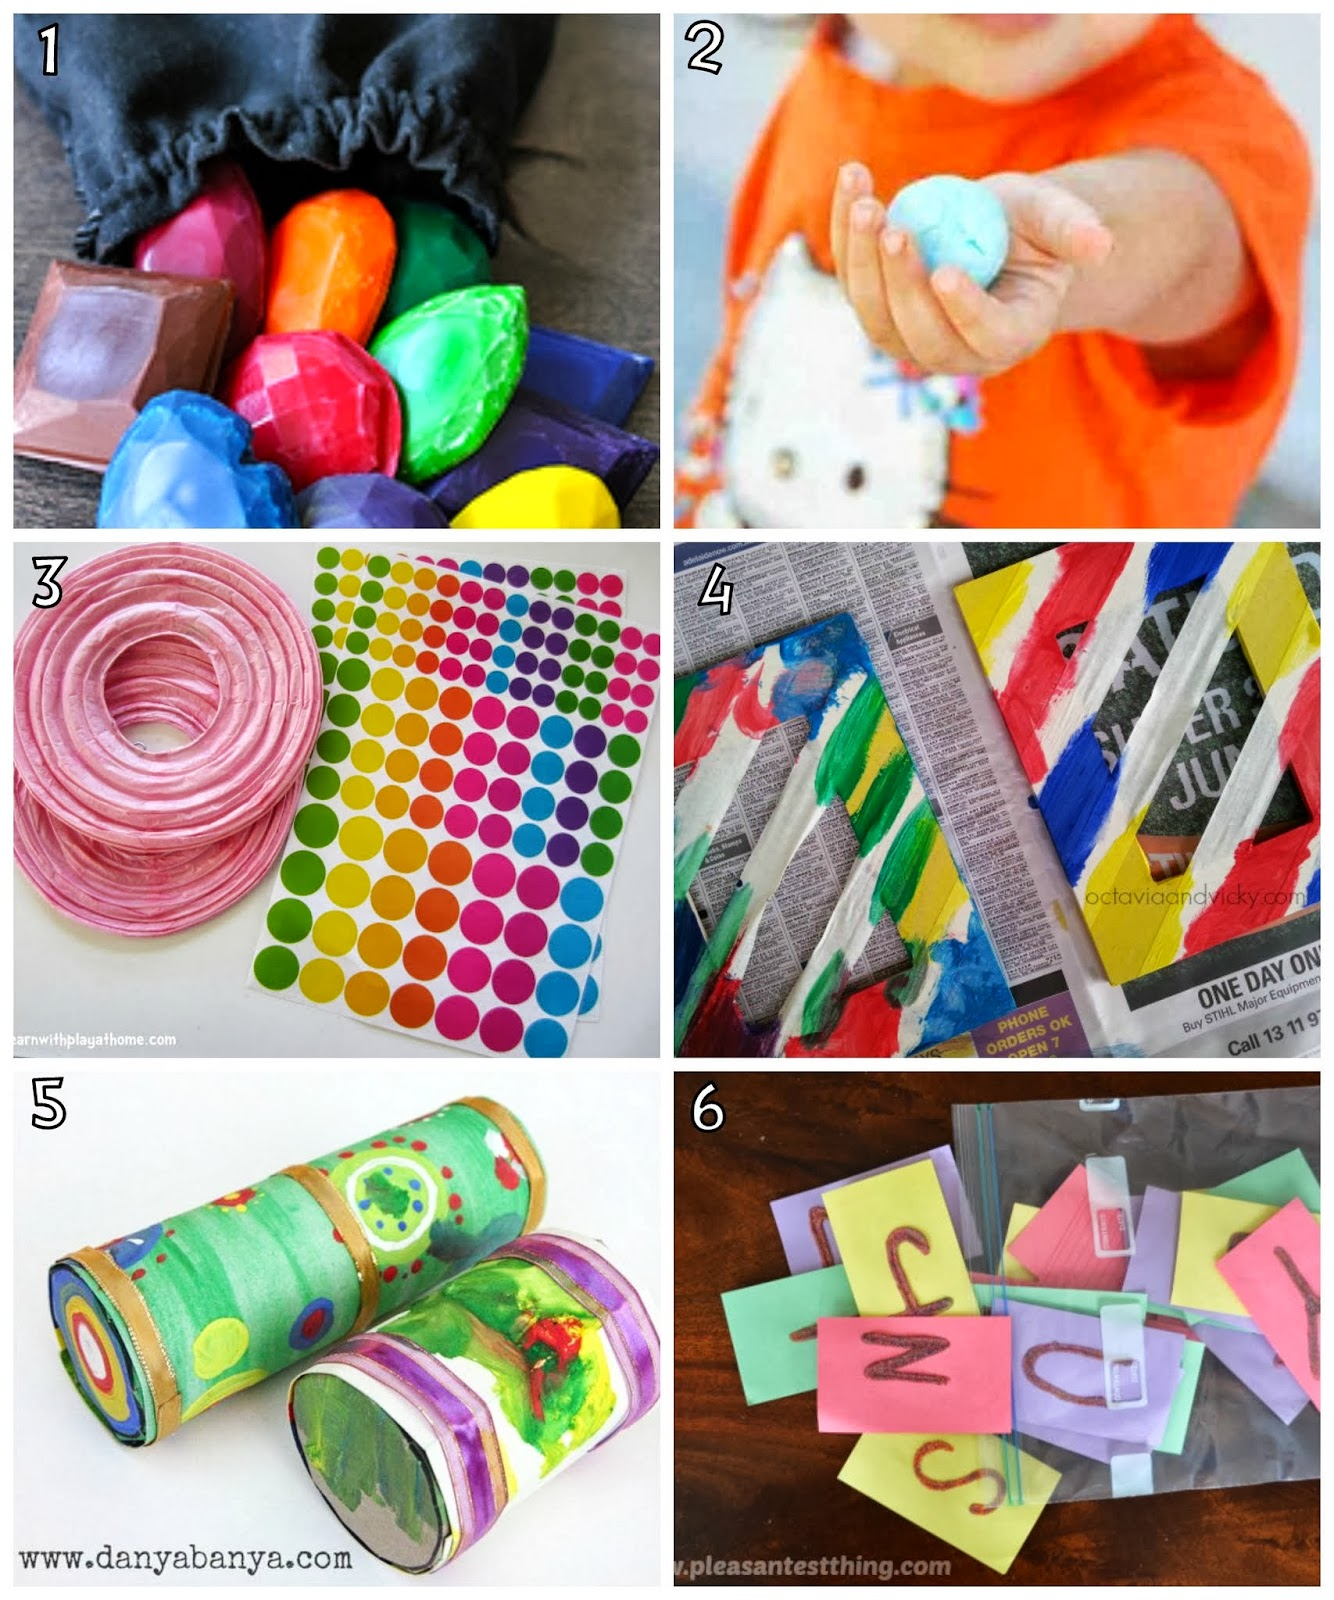 Learn With Play At Home 12 Fun Diy Activities For Kids